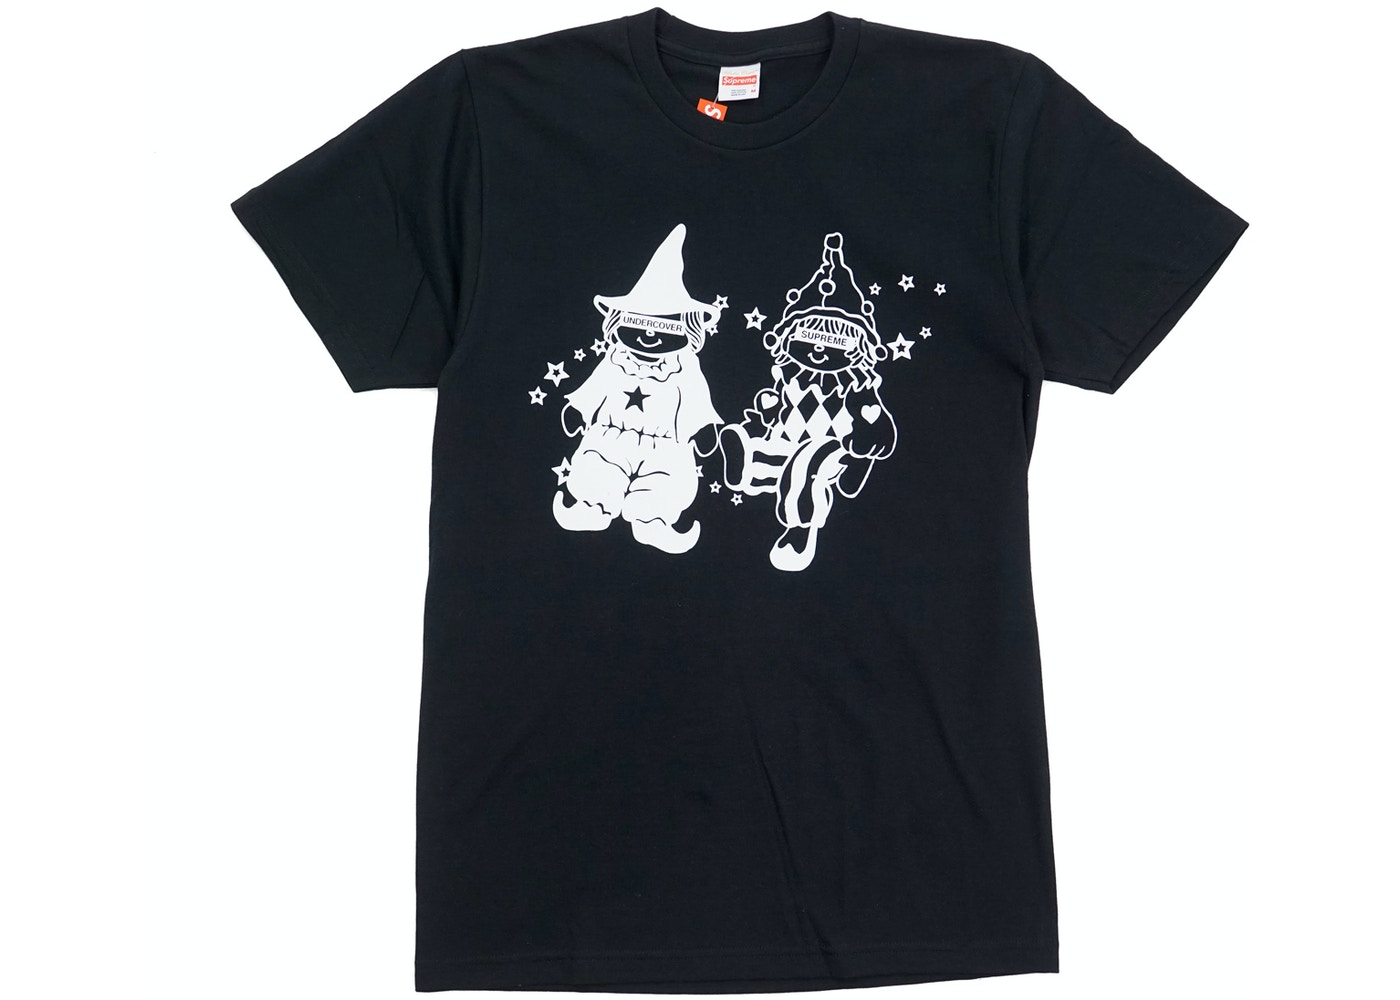 new arrival ae0df 1794d Supreme Undercover Dolls Tee Black - FW16